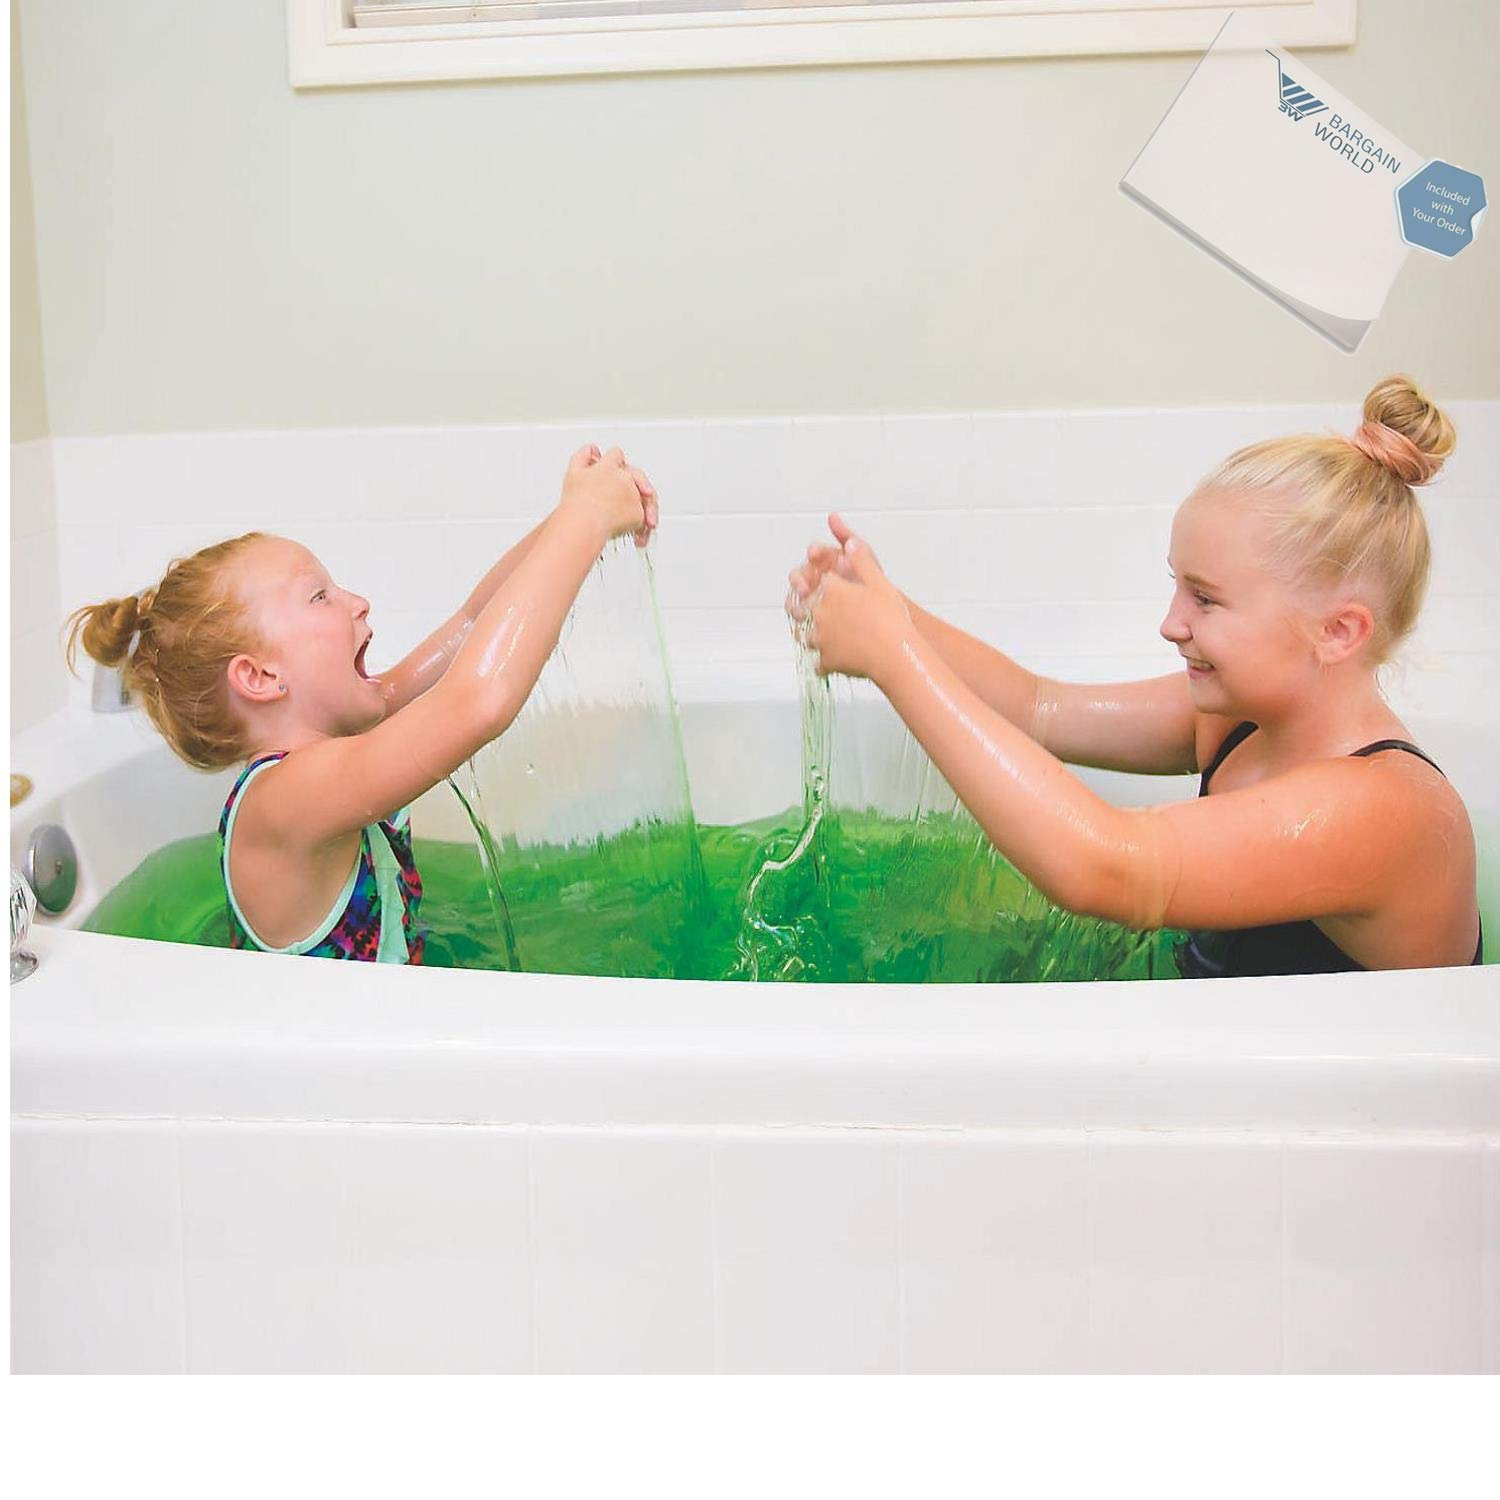 Bargain World Slime Baff (With Sticky Notes) by Bargain World (Image #4)